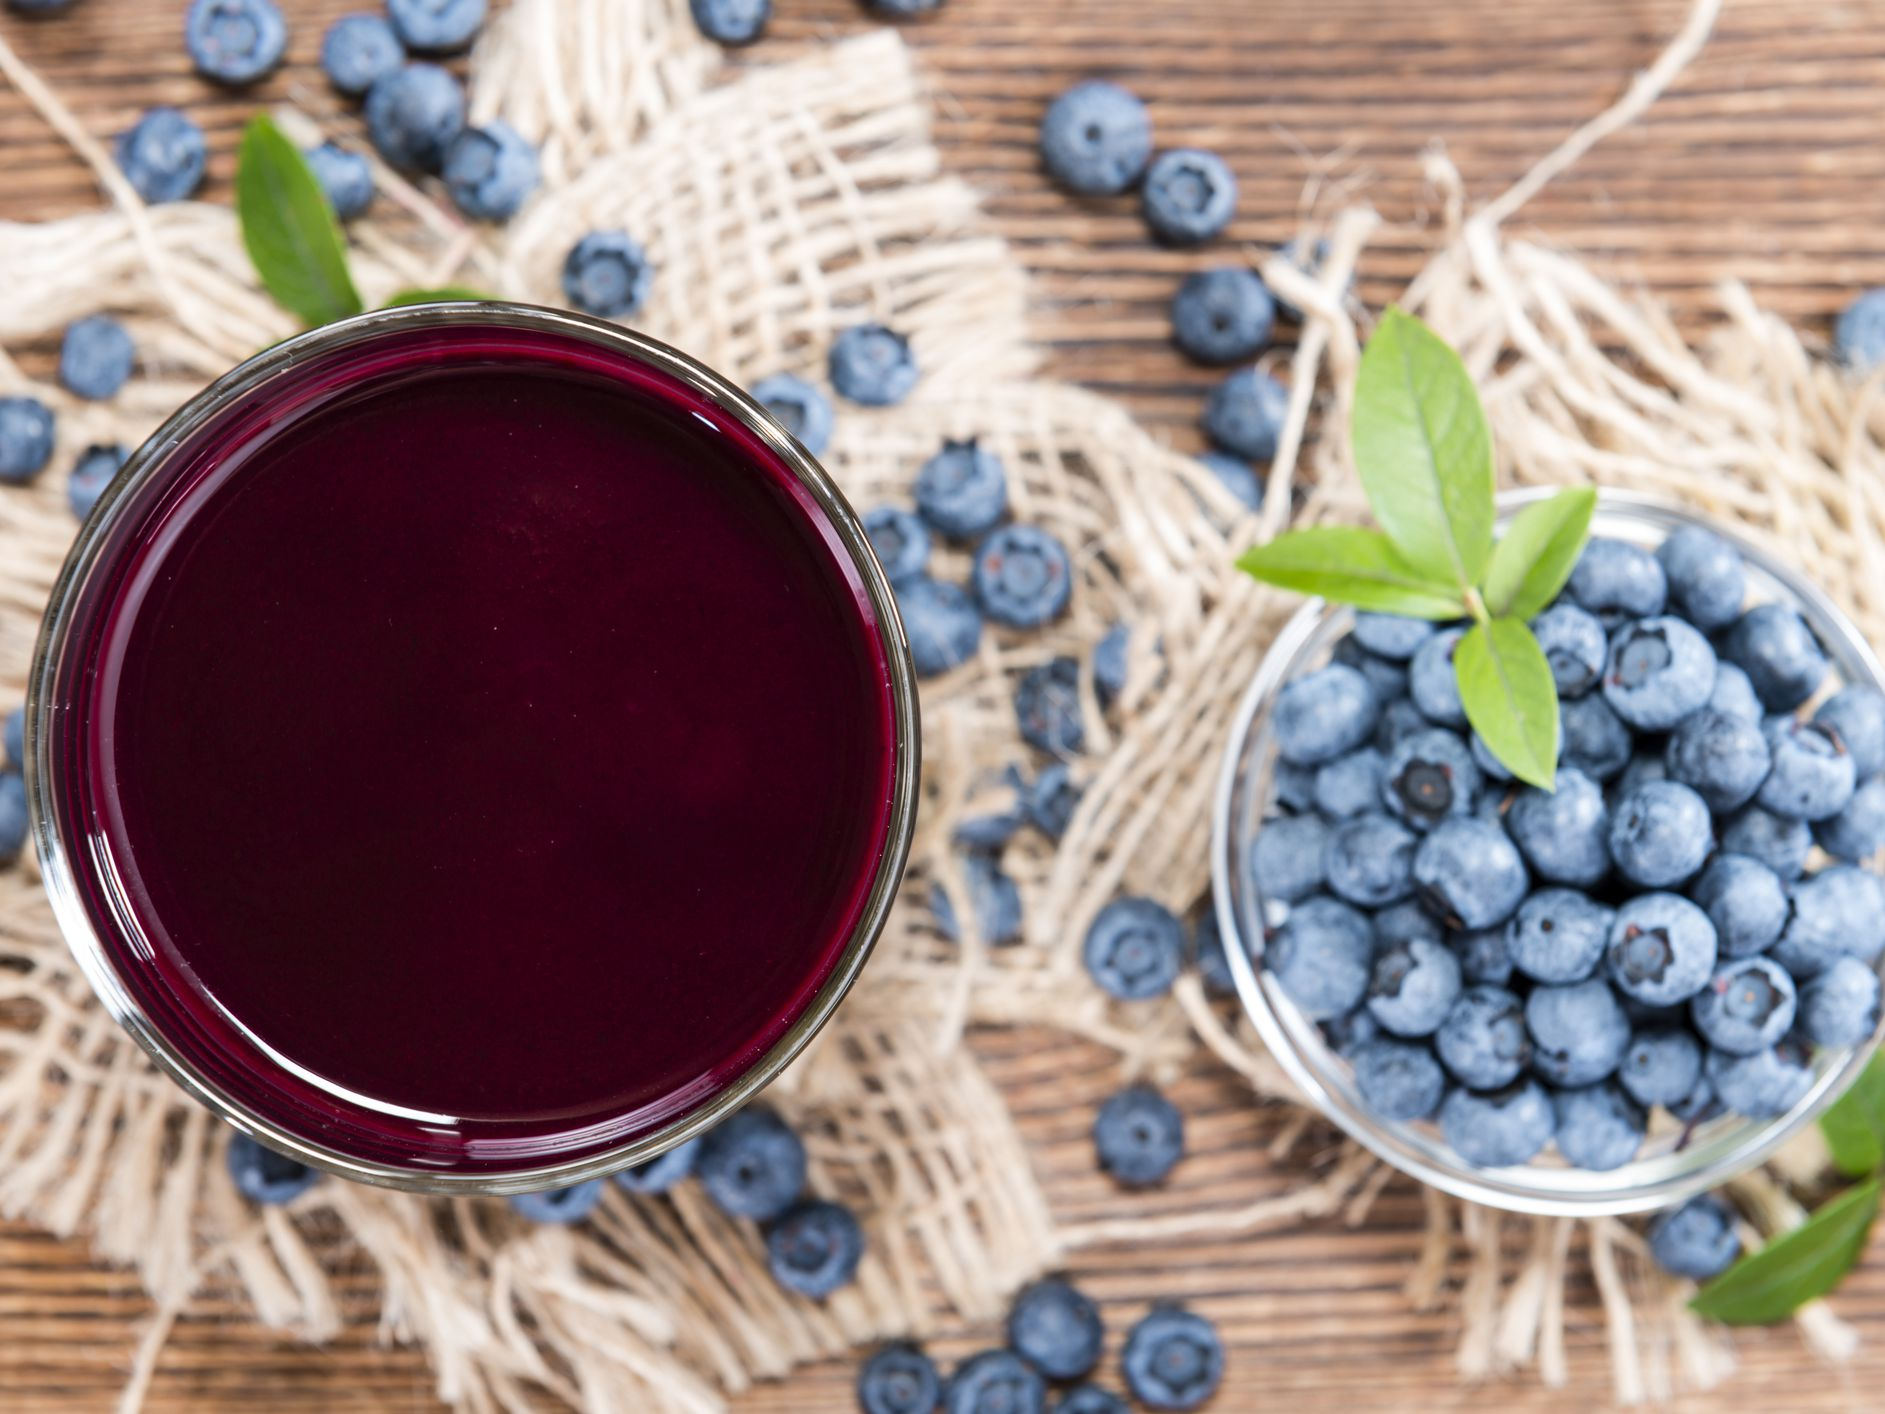 Blueberry Extract Uses, Benefits, and Side Effects